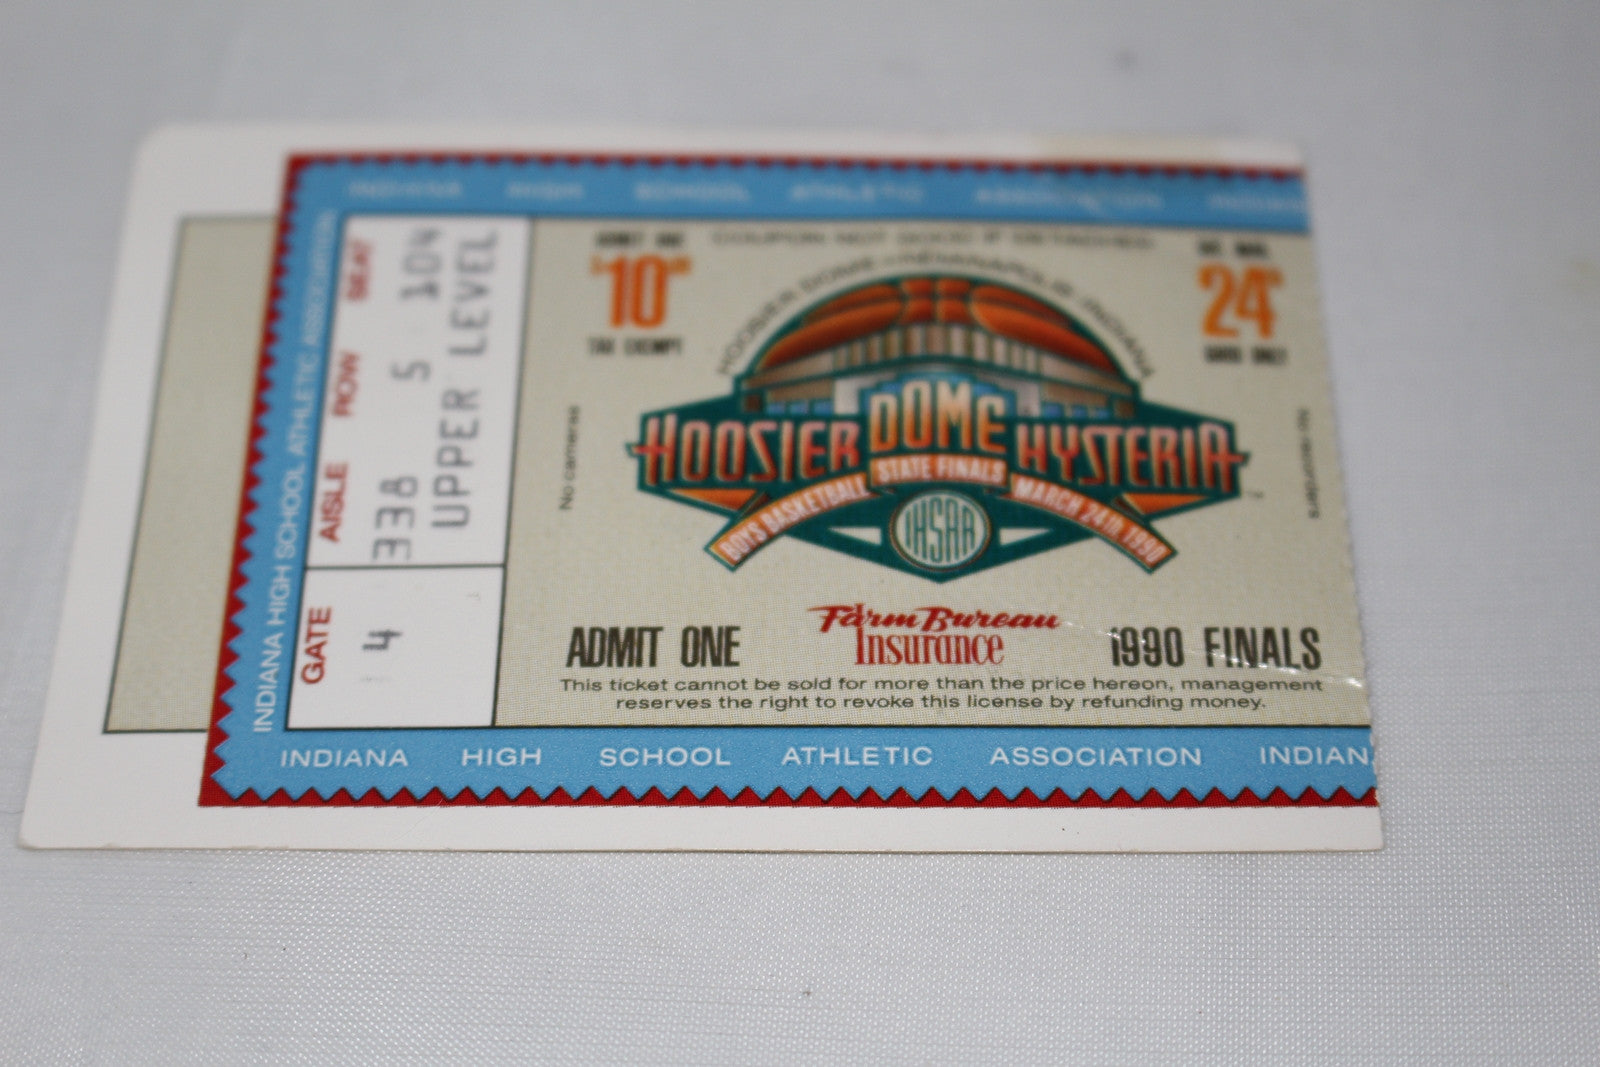 1990 Indiana High School State Basketball Finals Ticket Stub, Hoosier Dome, Damon Bailey - Vintage Indy Sports